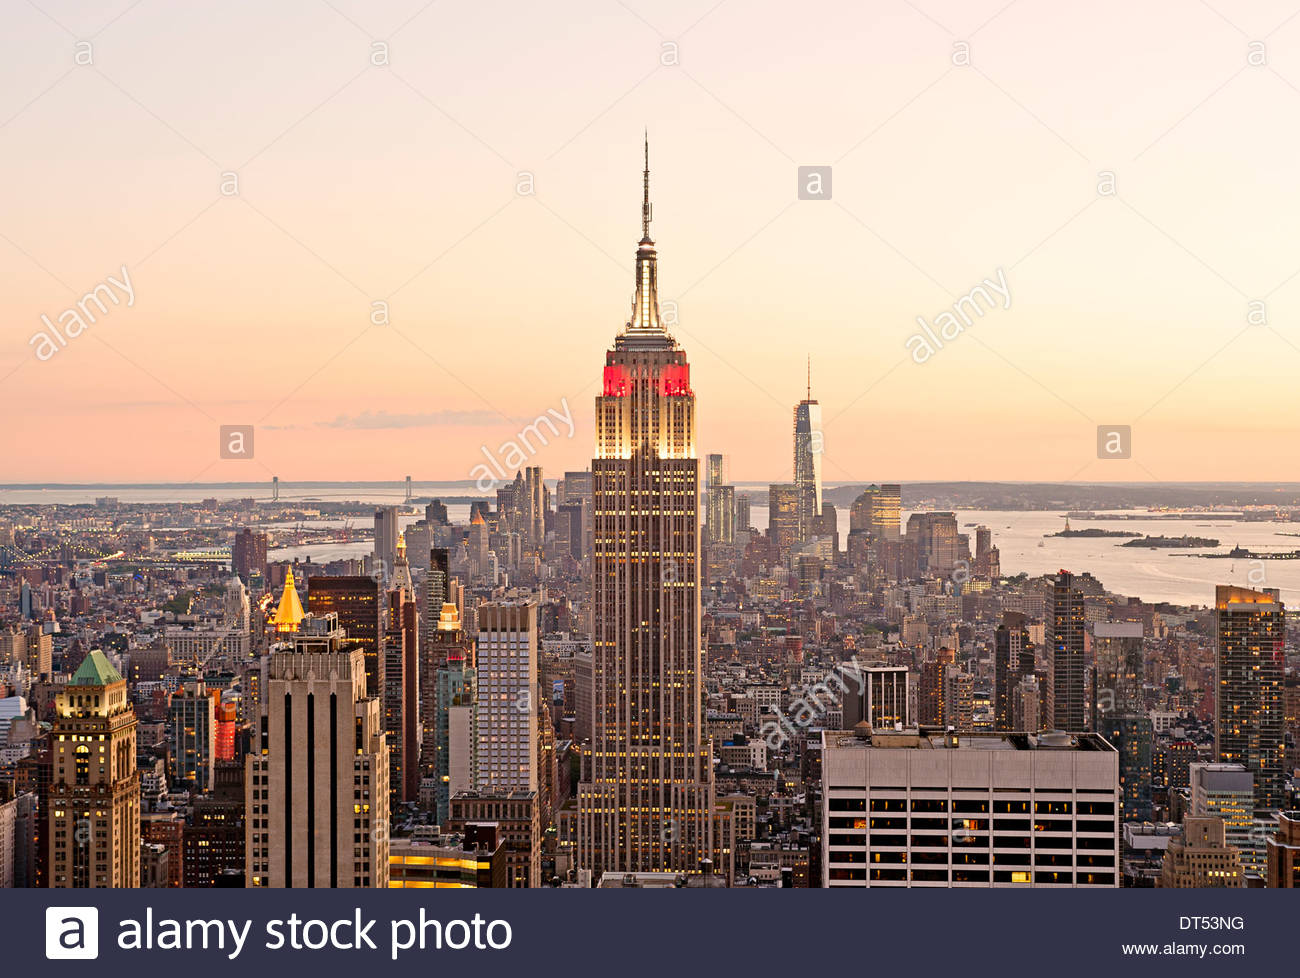 Toits de New York Manhattan New York Empire State Building vu de nouveau au crépuscule Photo Stock